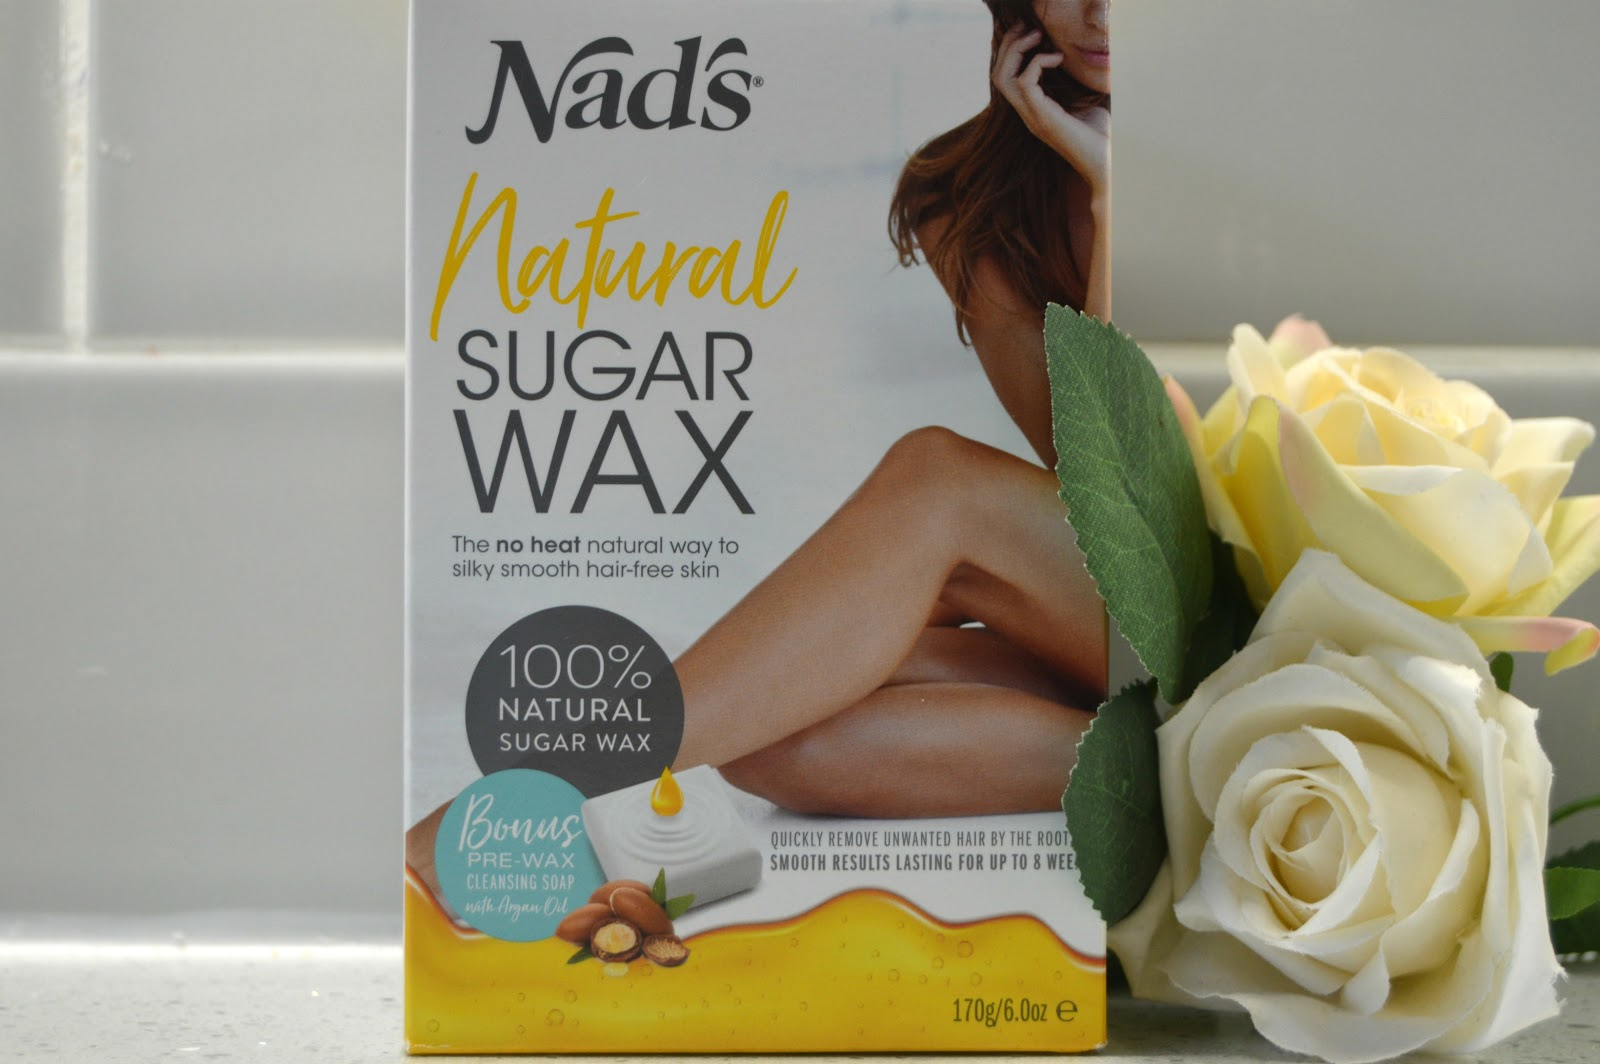 Nad's hair removal products